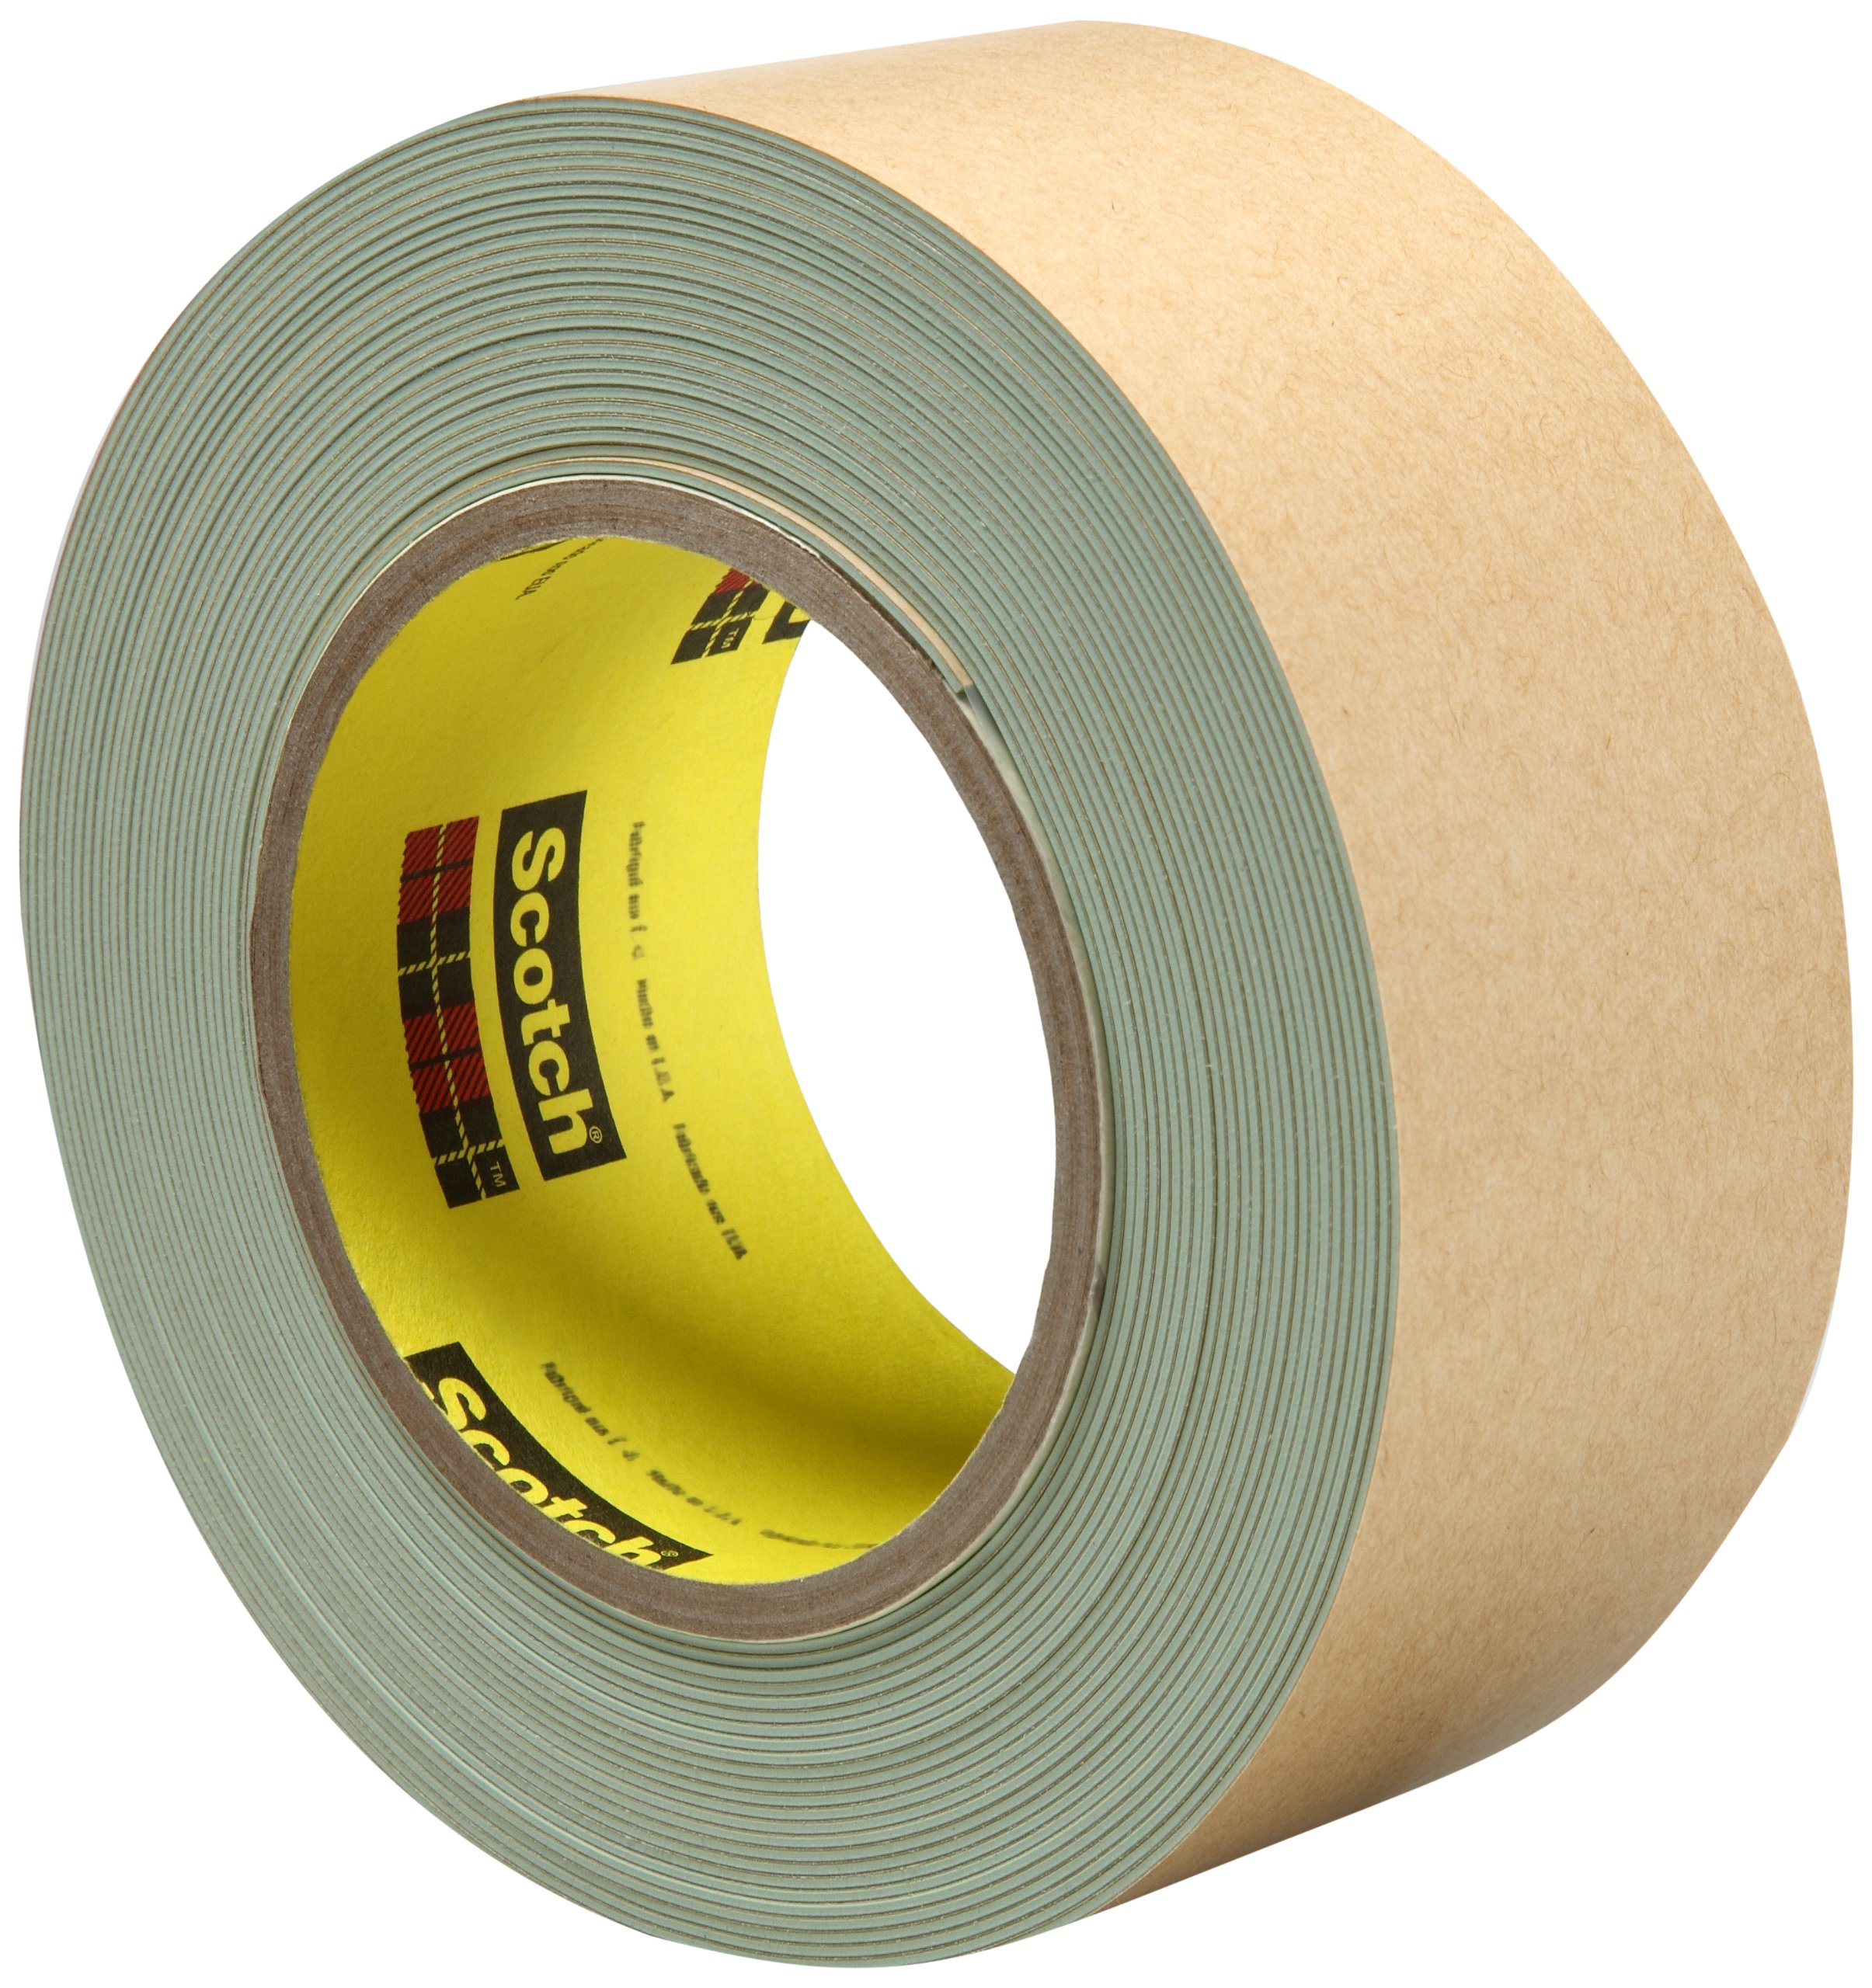 3M Impact Stripping Tape 500, 2'' x 10 yd 33 mil, Green (Pack of 6)